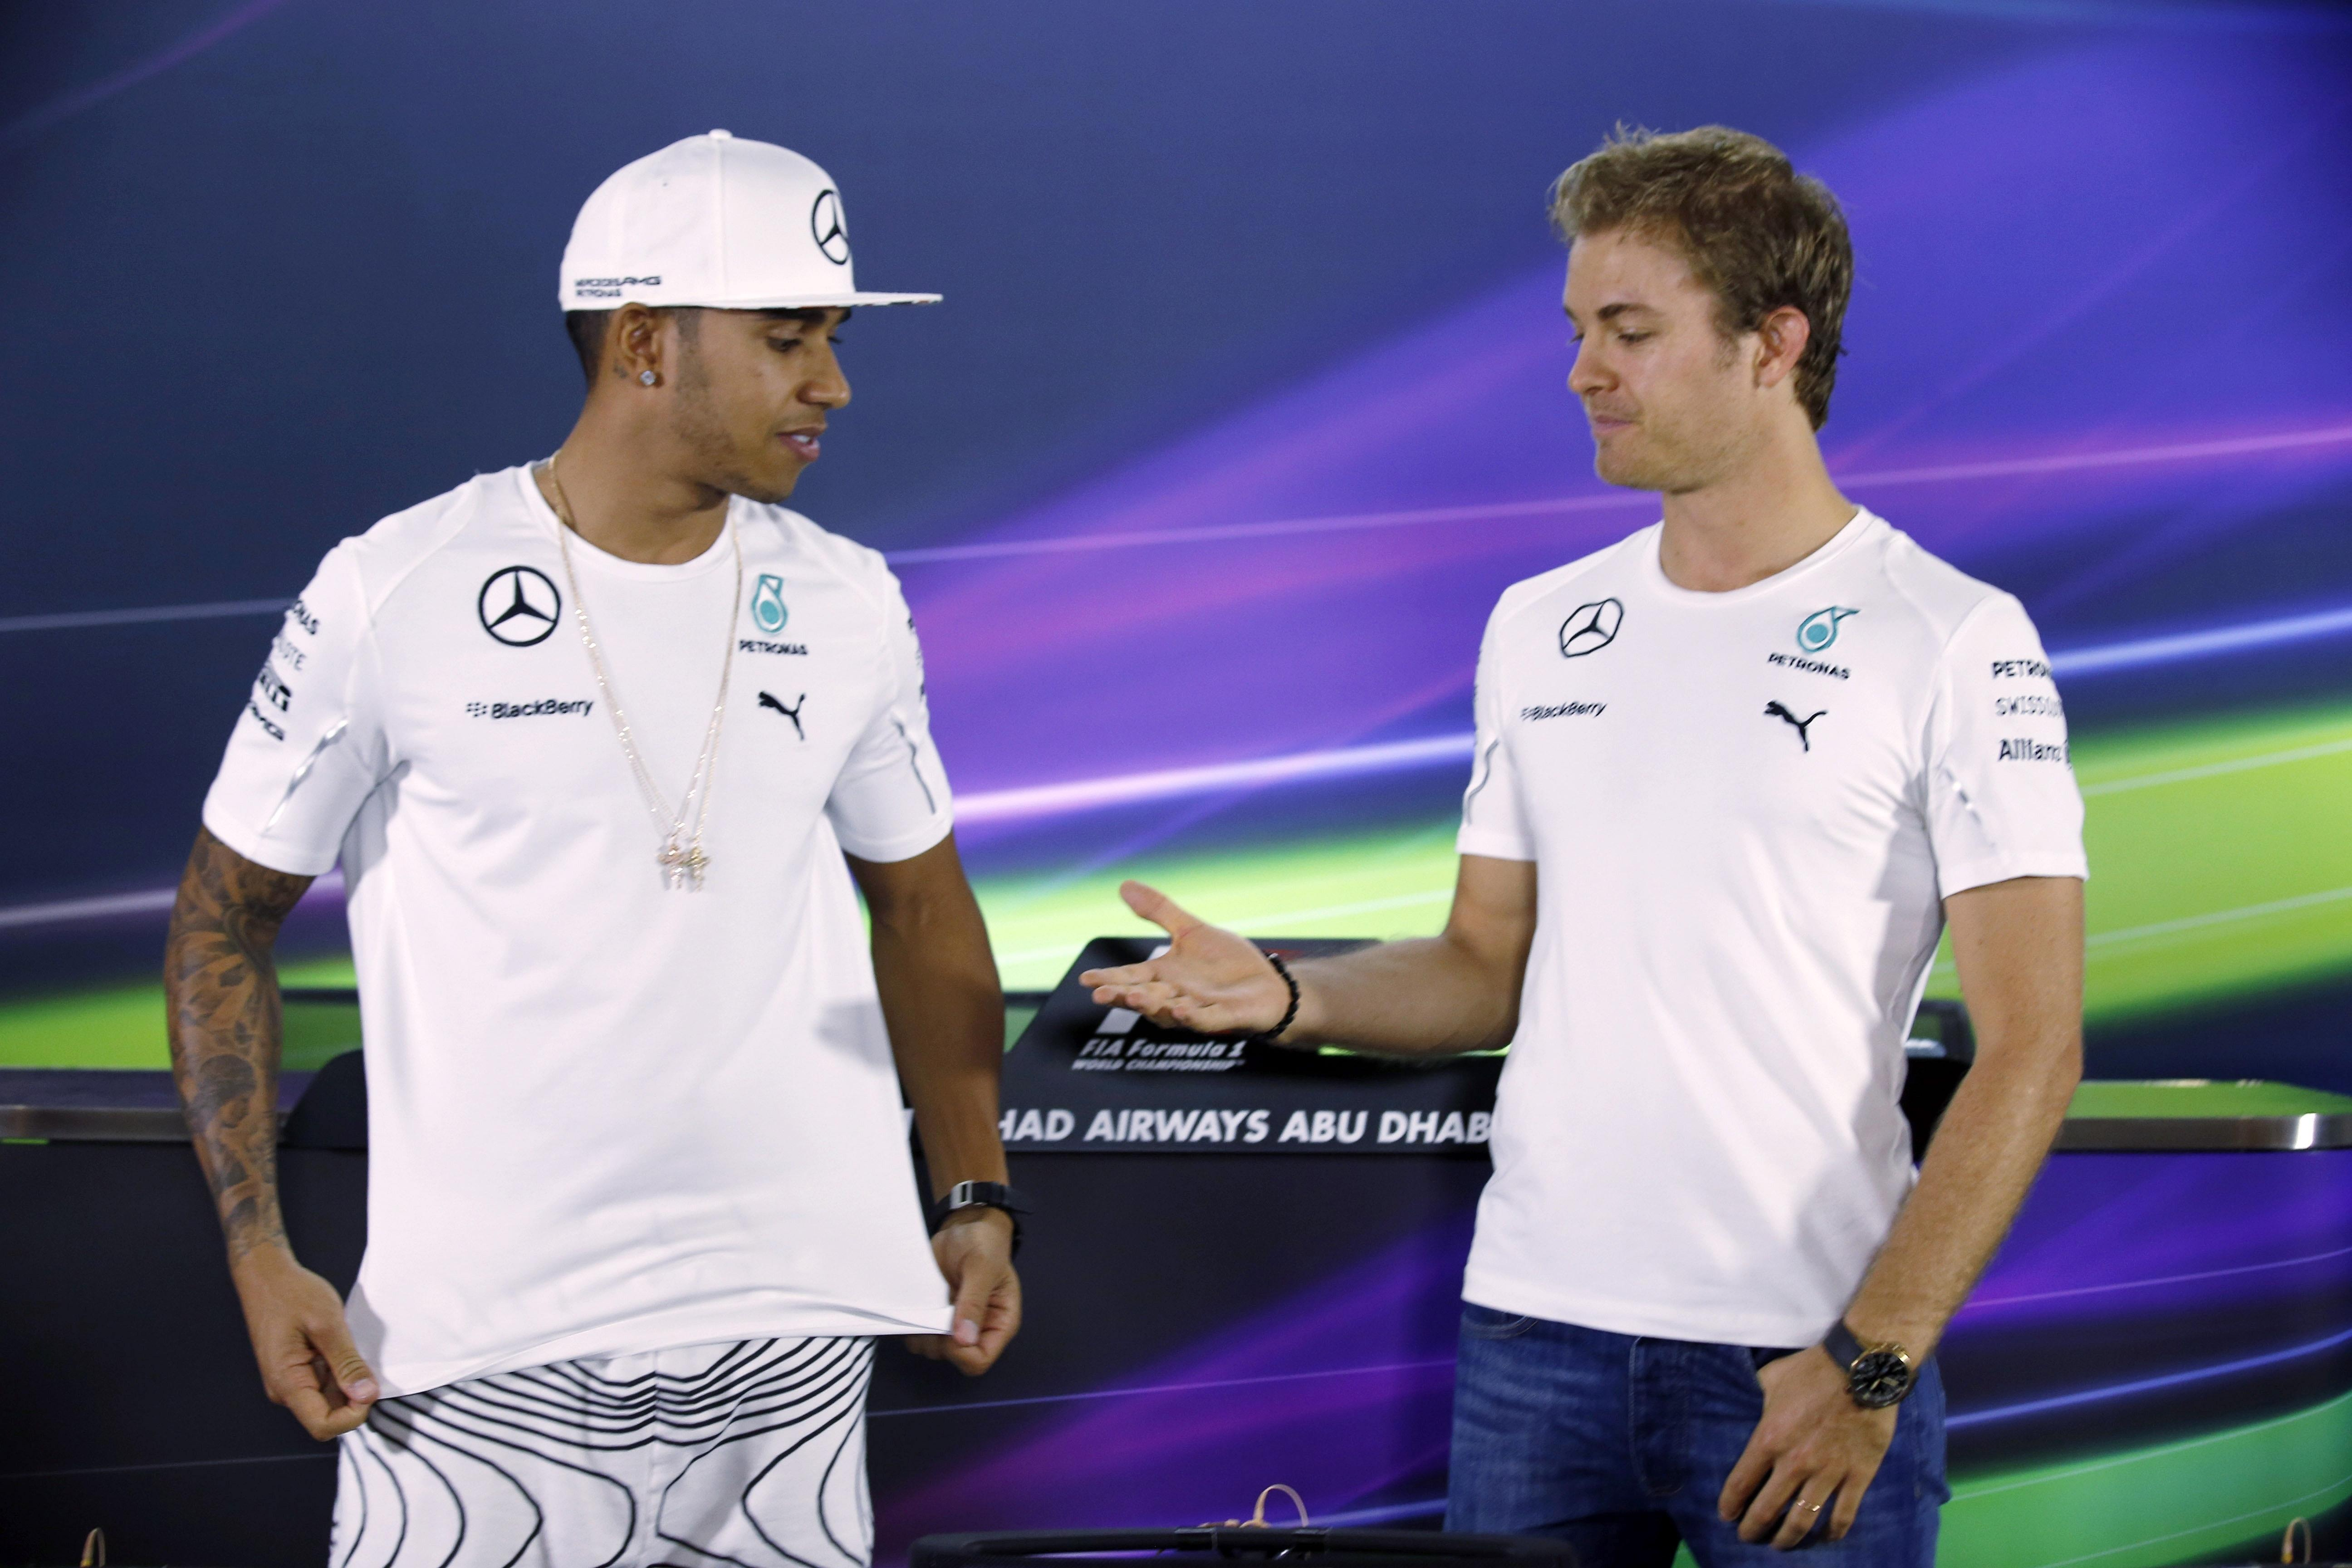 Nico Rosberg has offered former team-mate Lewis Hamilton an olive branch